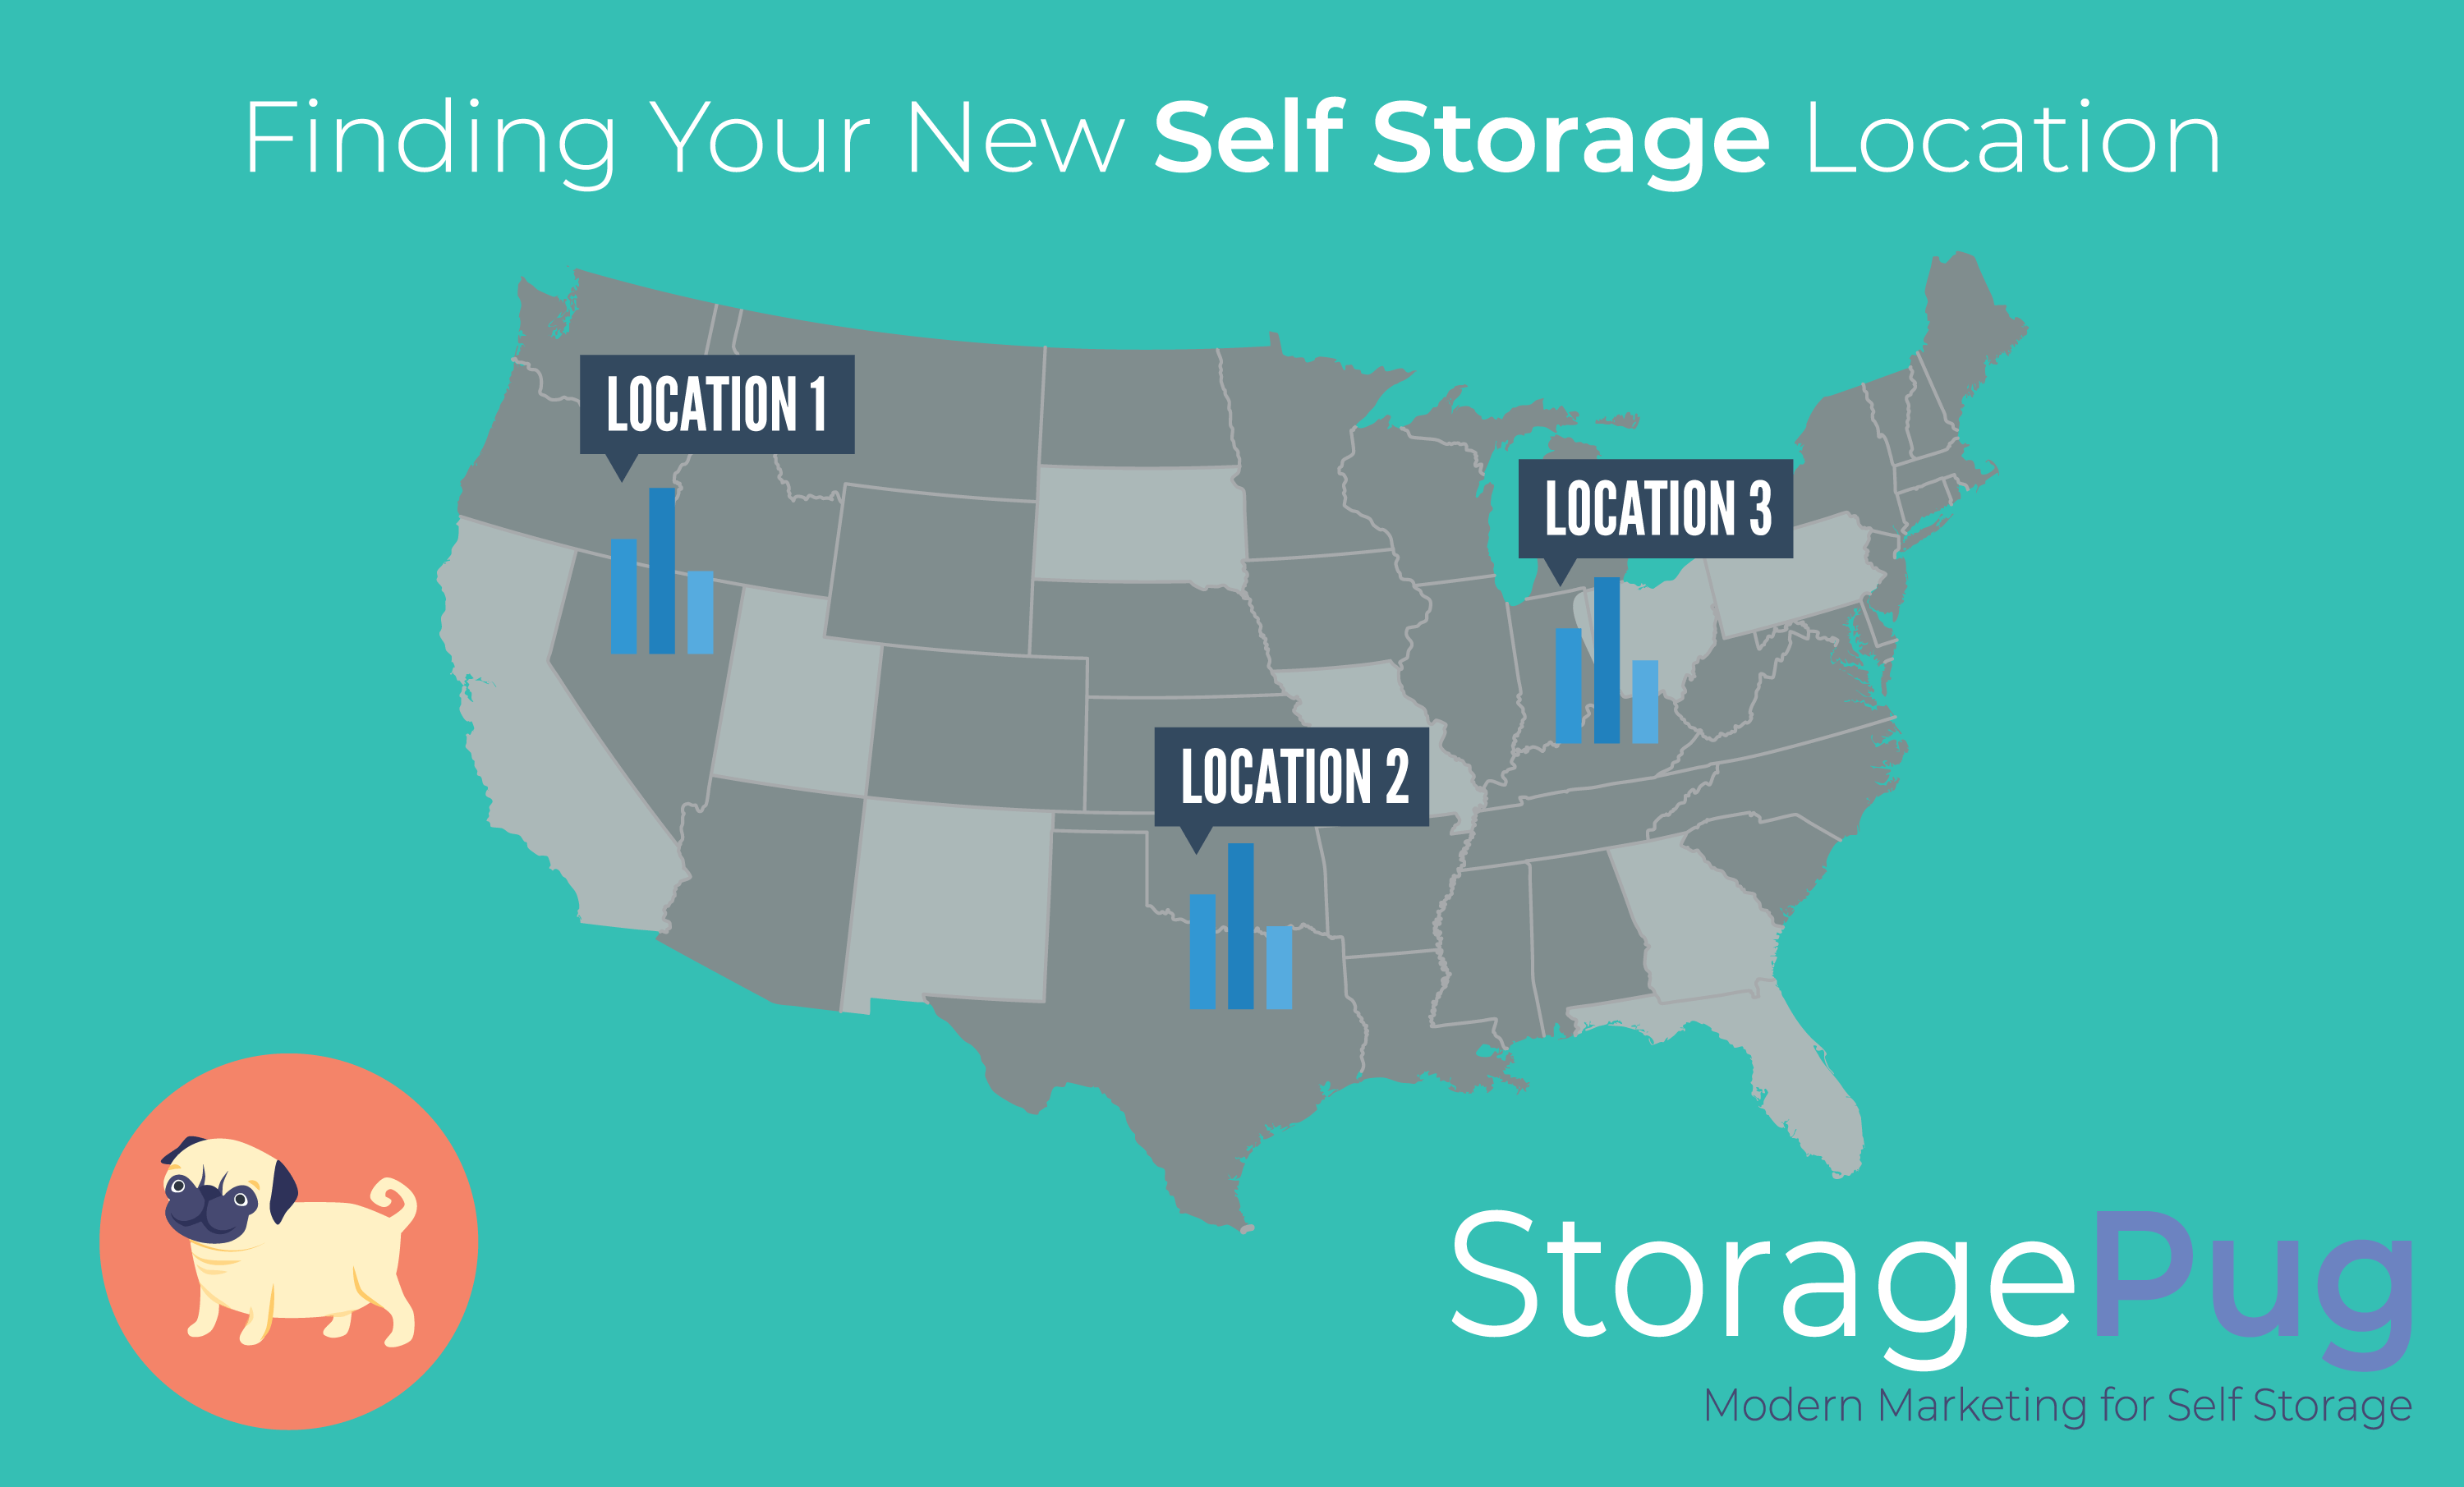 Finding your New Self Storage Location